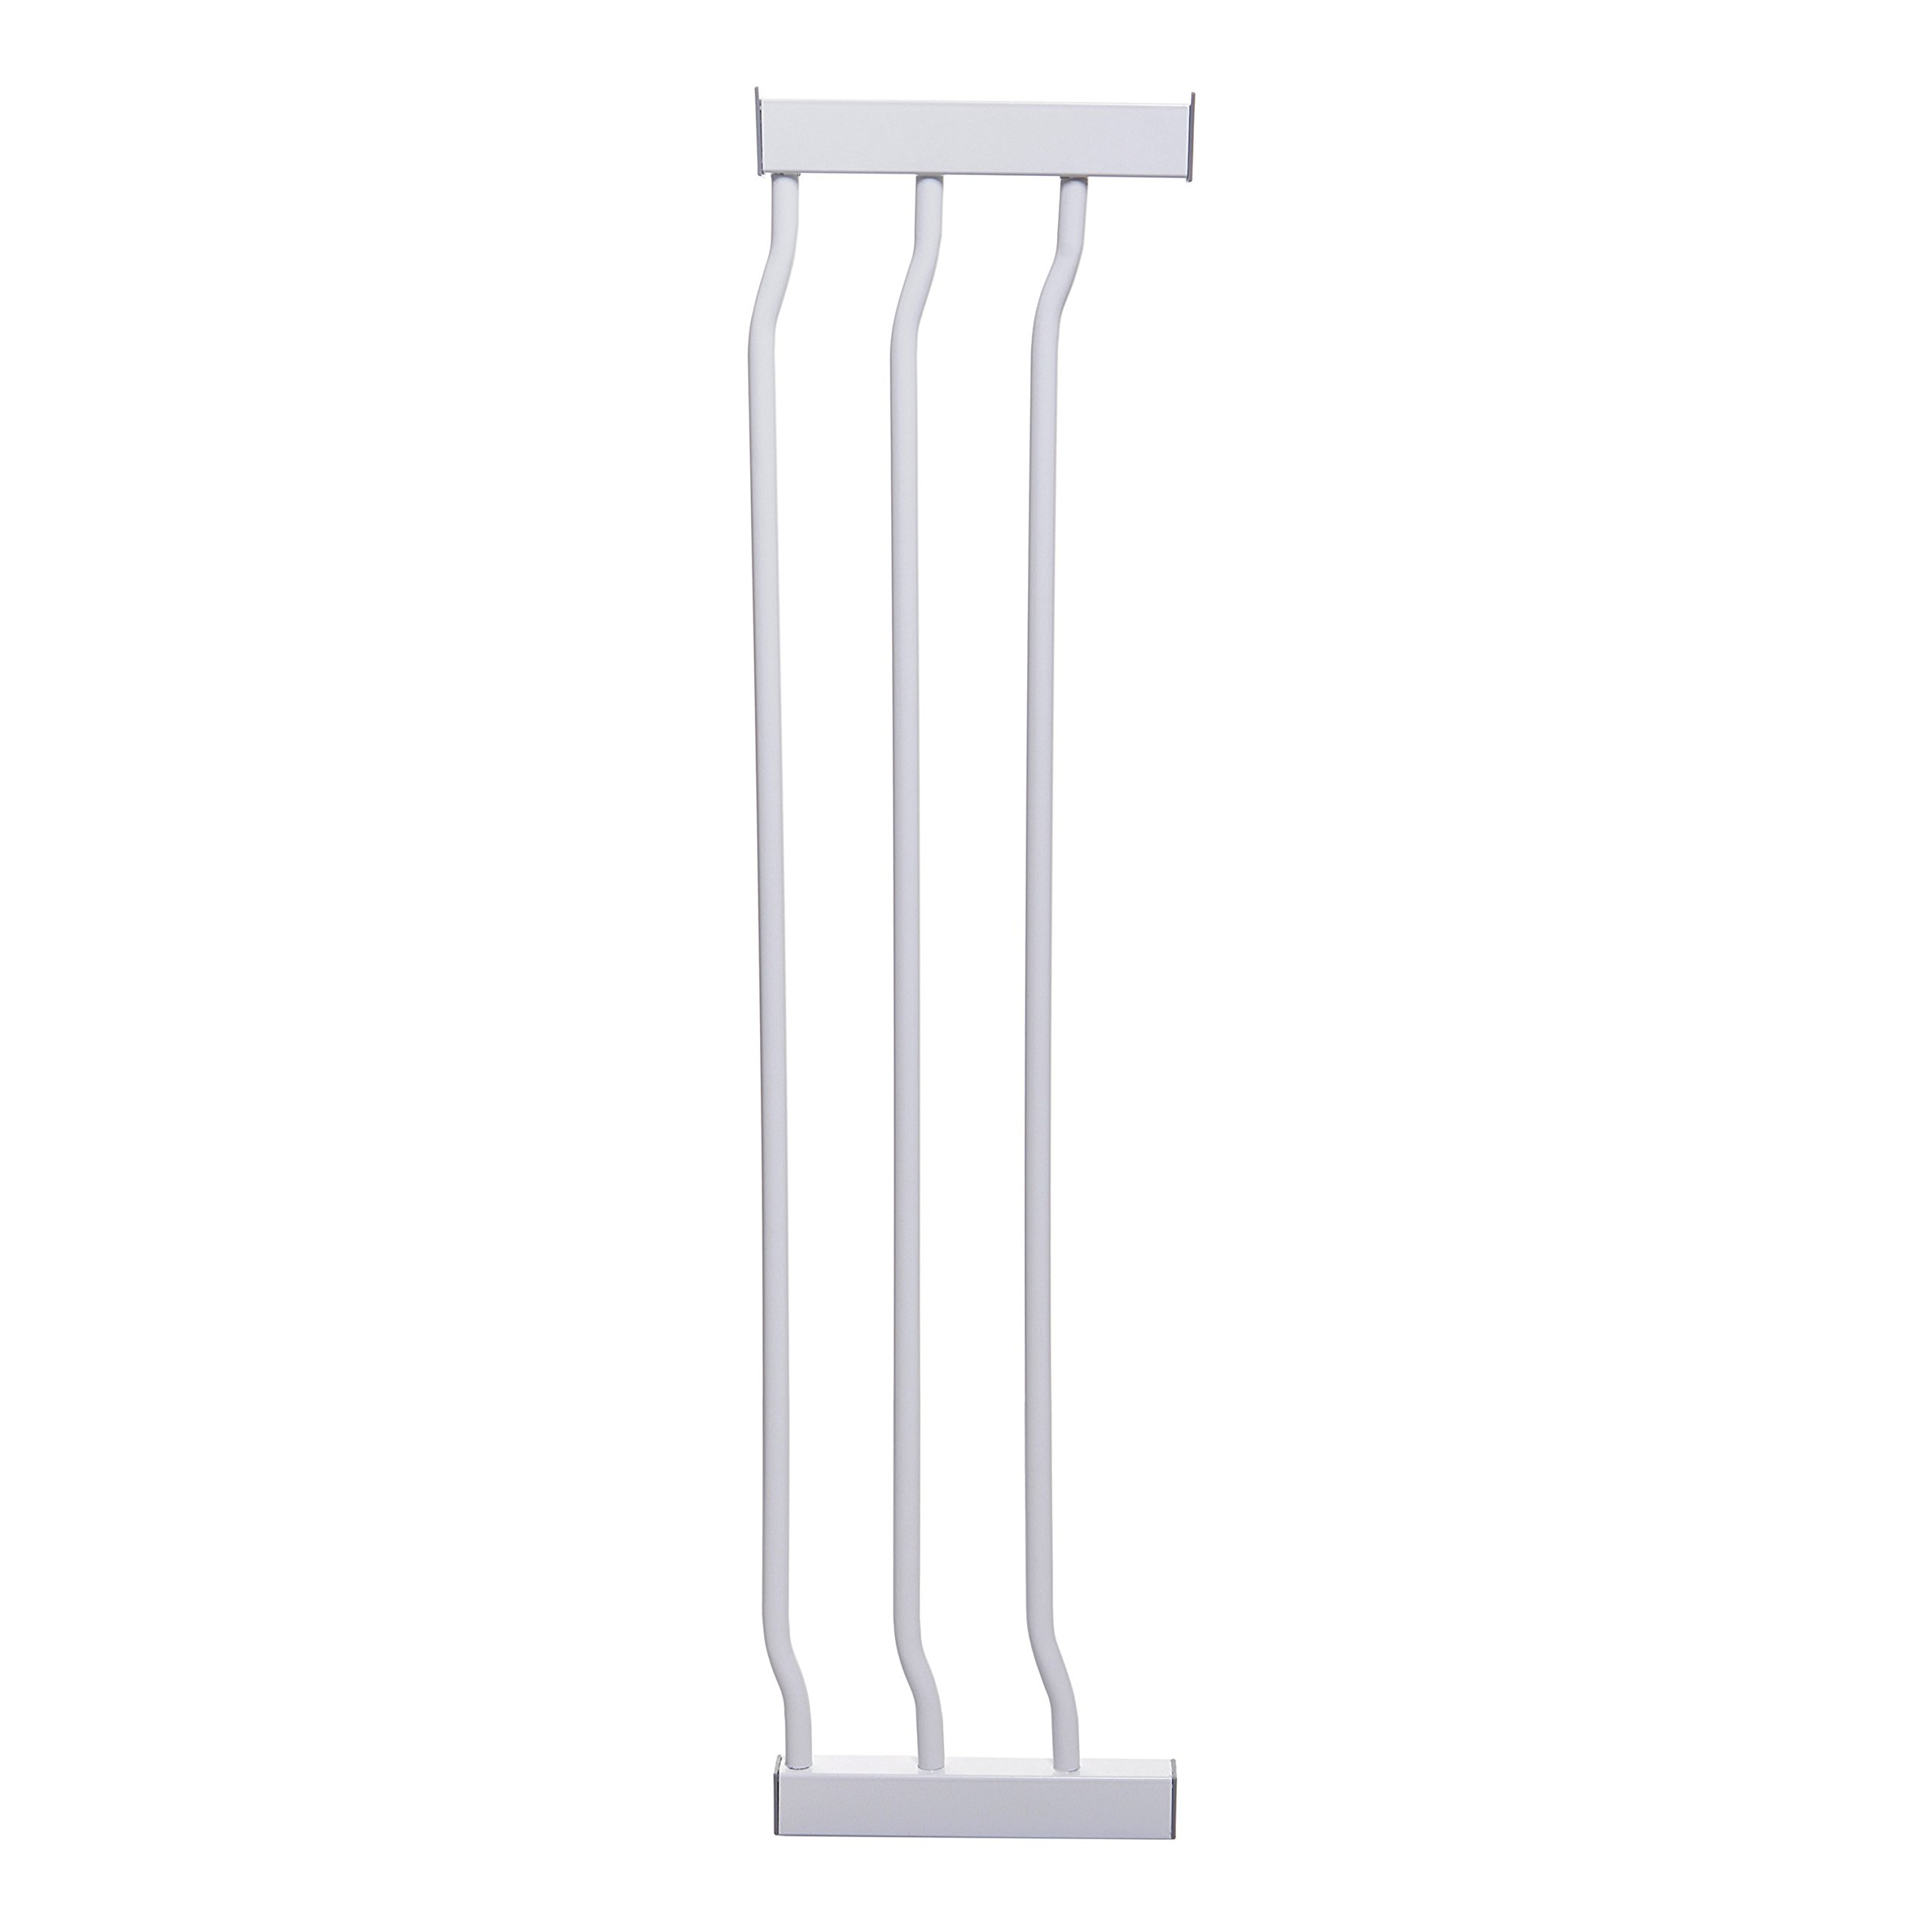 Dreambaby Liberty Gate Extension (7 inch, White) by Dreambaby (Image #1)